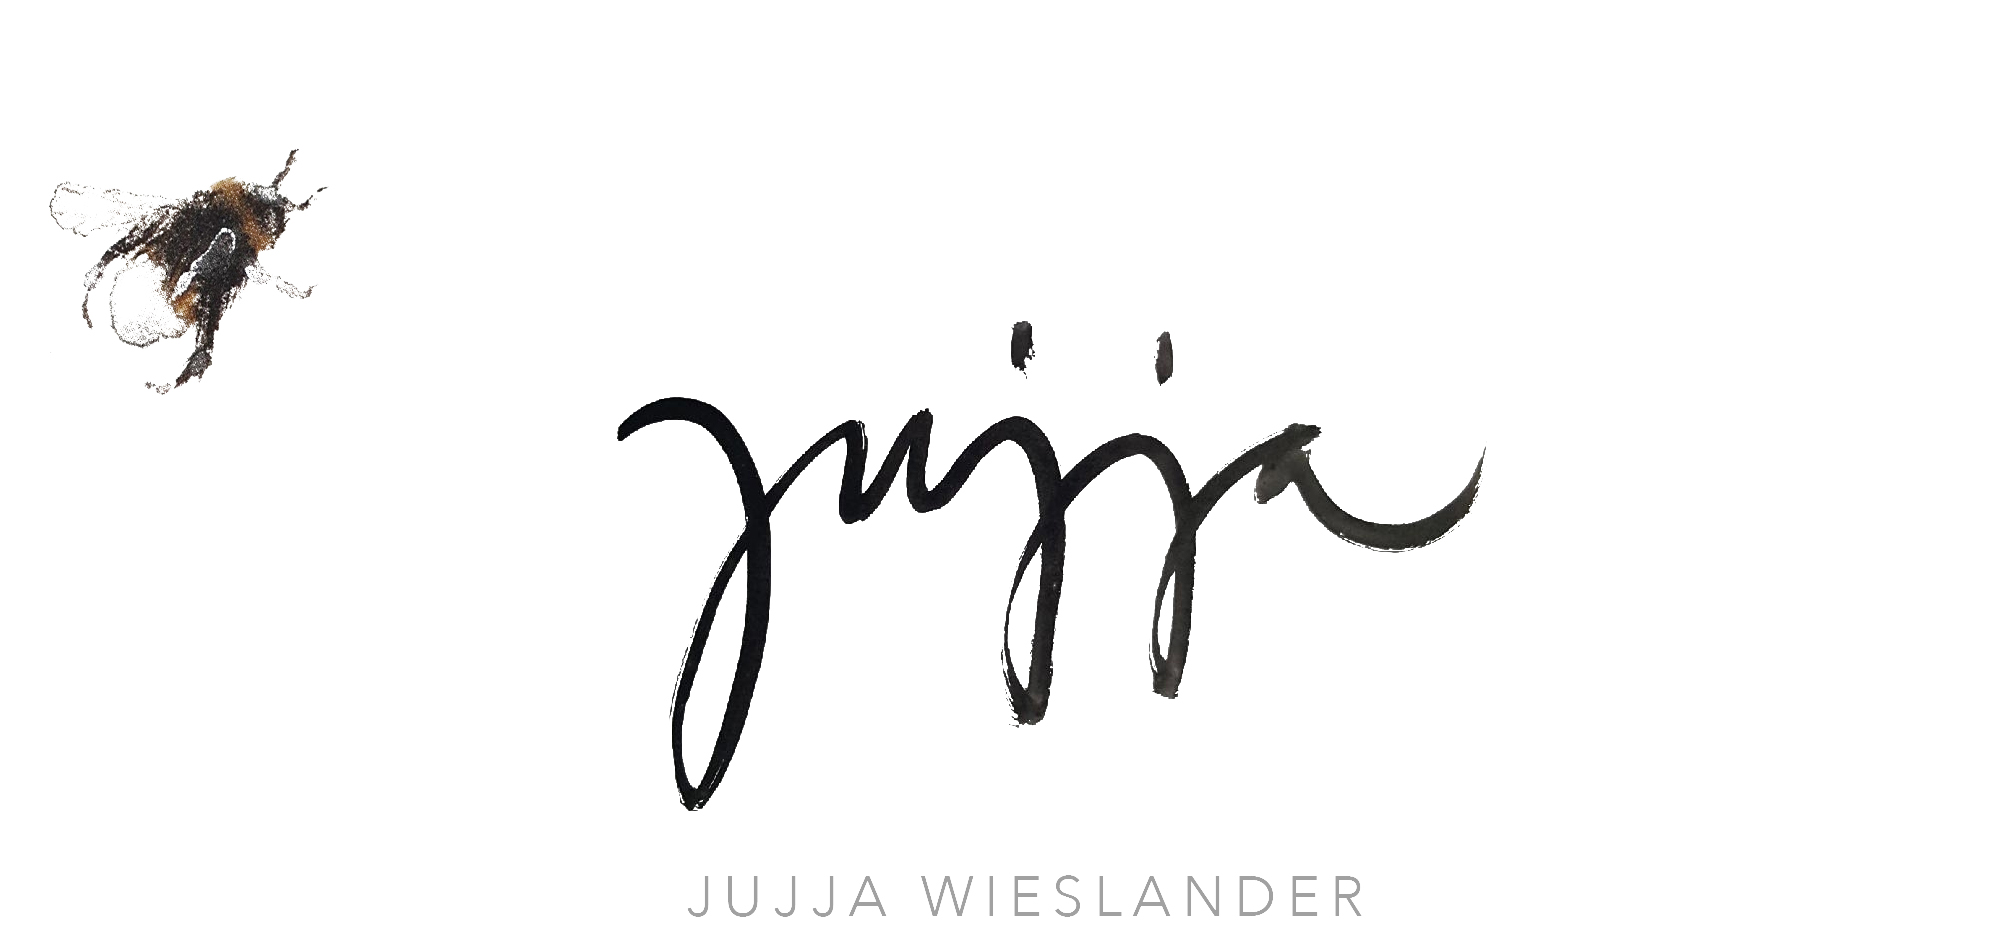 Jujja Wieslander – english